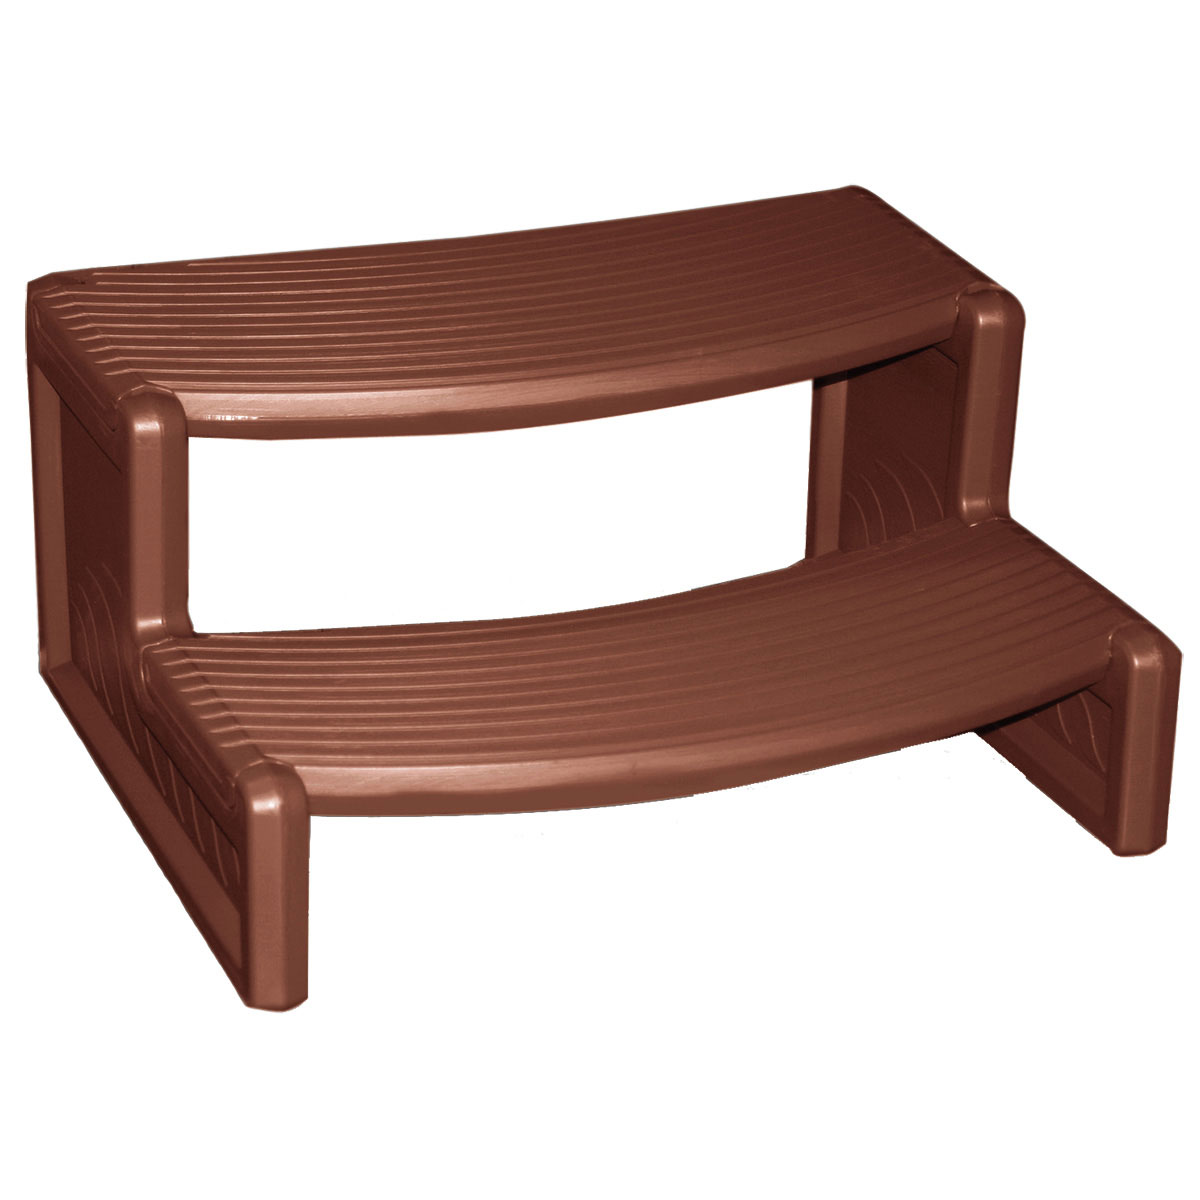 Confer Handi-Step Spa Step - Fits Straight Or Round Spa - Mahogany